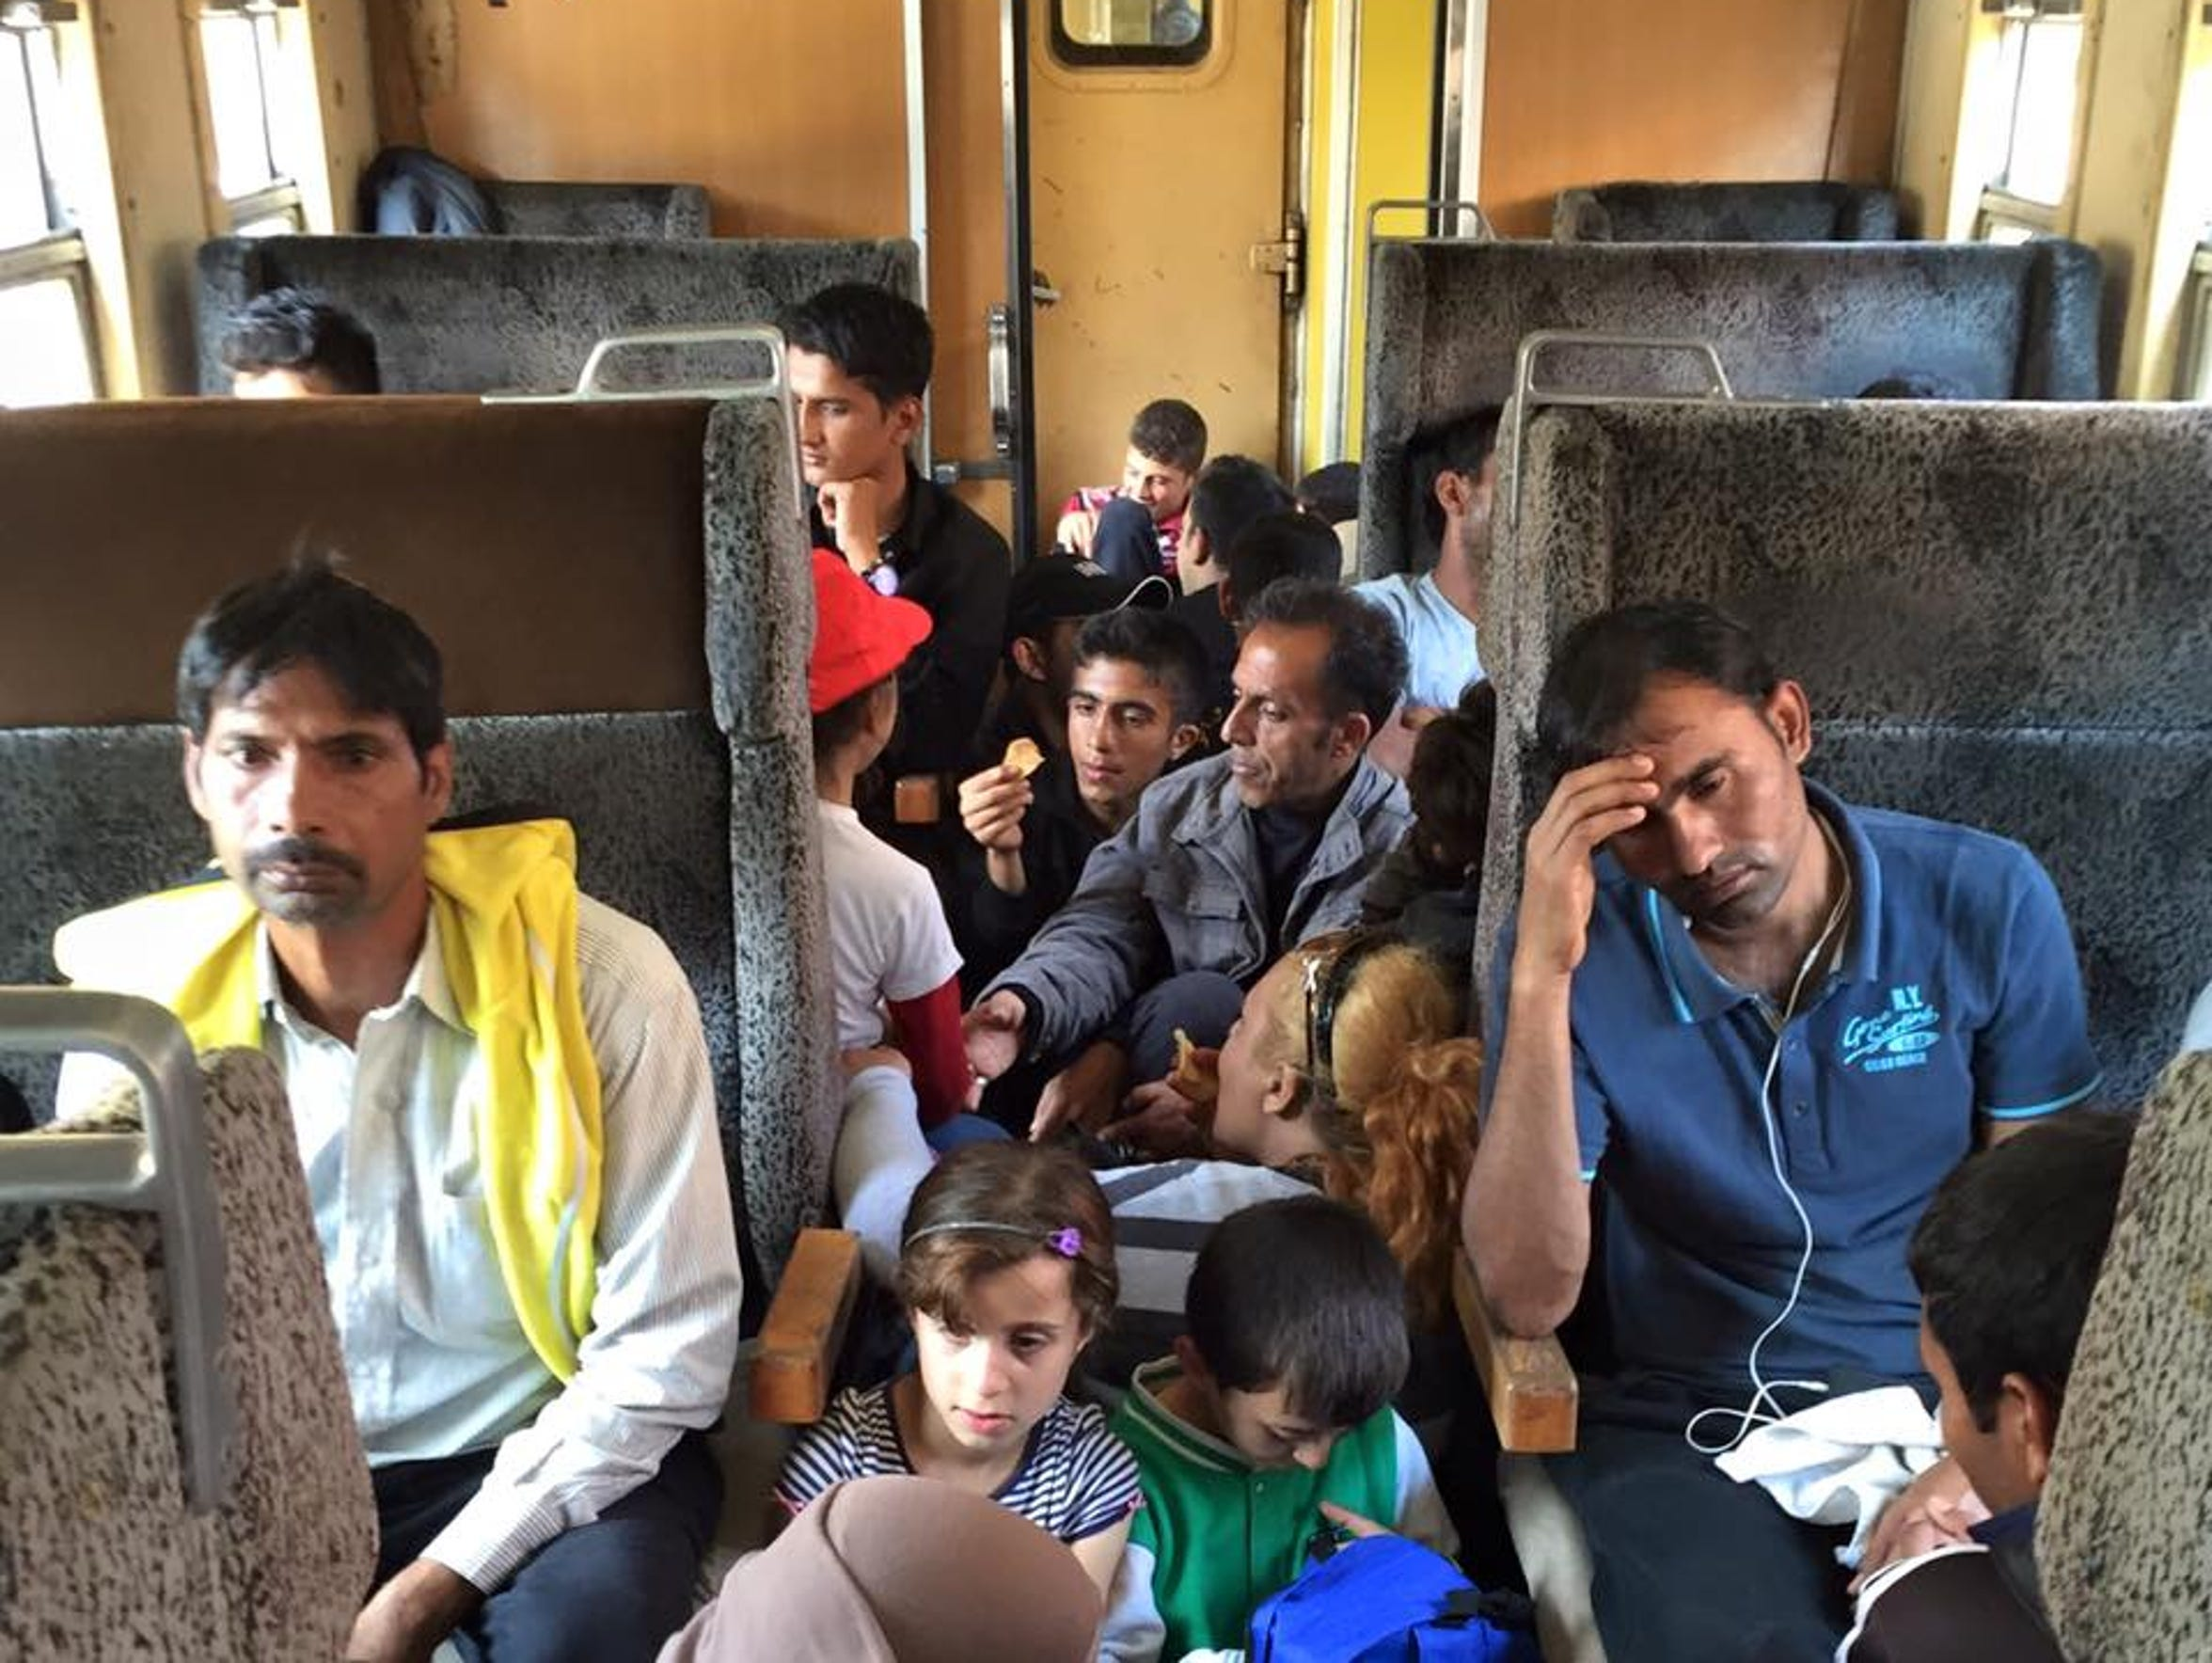 Migrants and refugees crammed on a train to Serbia